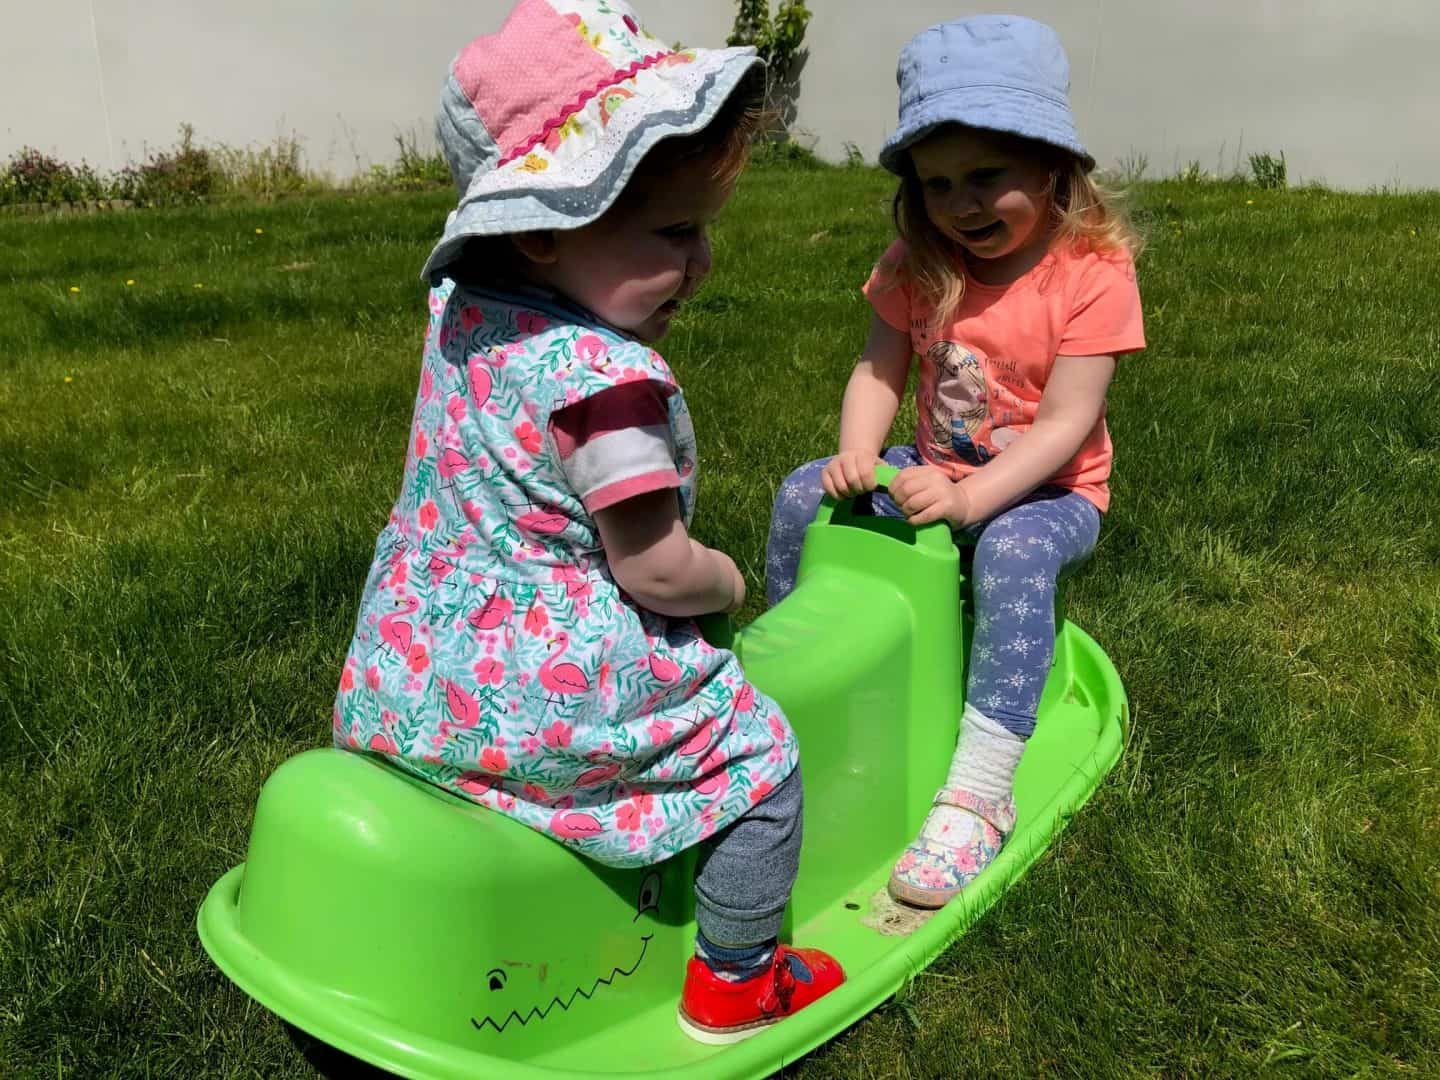 the-girls-on-the-see-saw